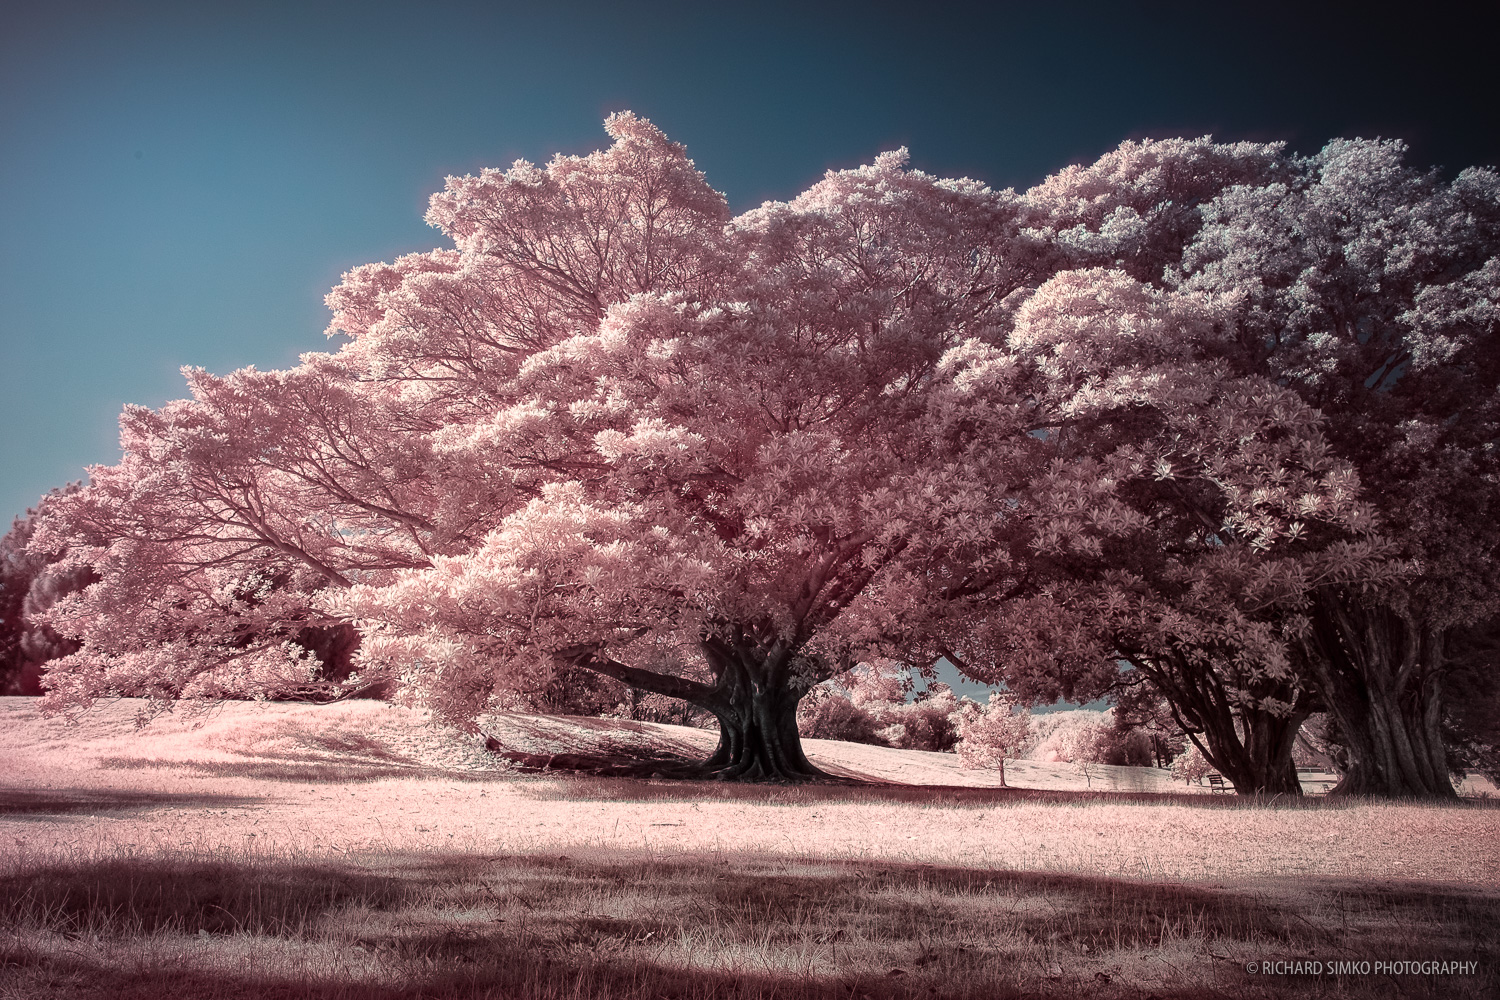 Infrared photograph taken at Centenial Park in Sydney. This is a result of one of my first ventures into infrared world. I used screw-on IR filter on my camera and went out armed only with basic theoretical knowledge of IR photography. Although not perfect, I was quite pleased with the result.Even the false color processing turned out quite ok. Whole image feels that it could be a scene from Japan during cherry blossom season. On top of that I really love how magnificent the tree is.